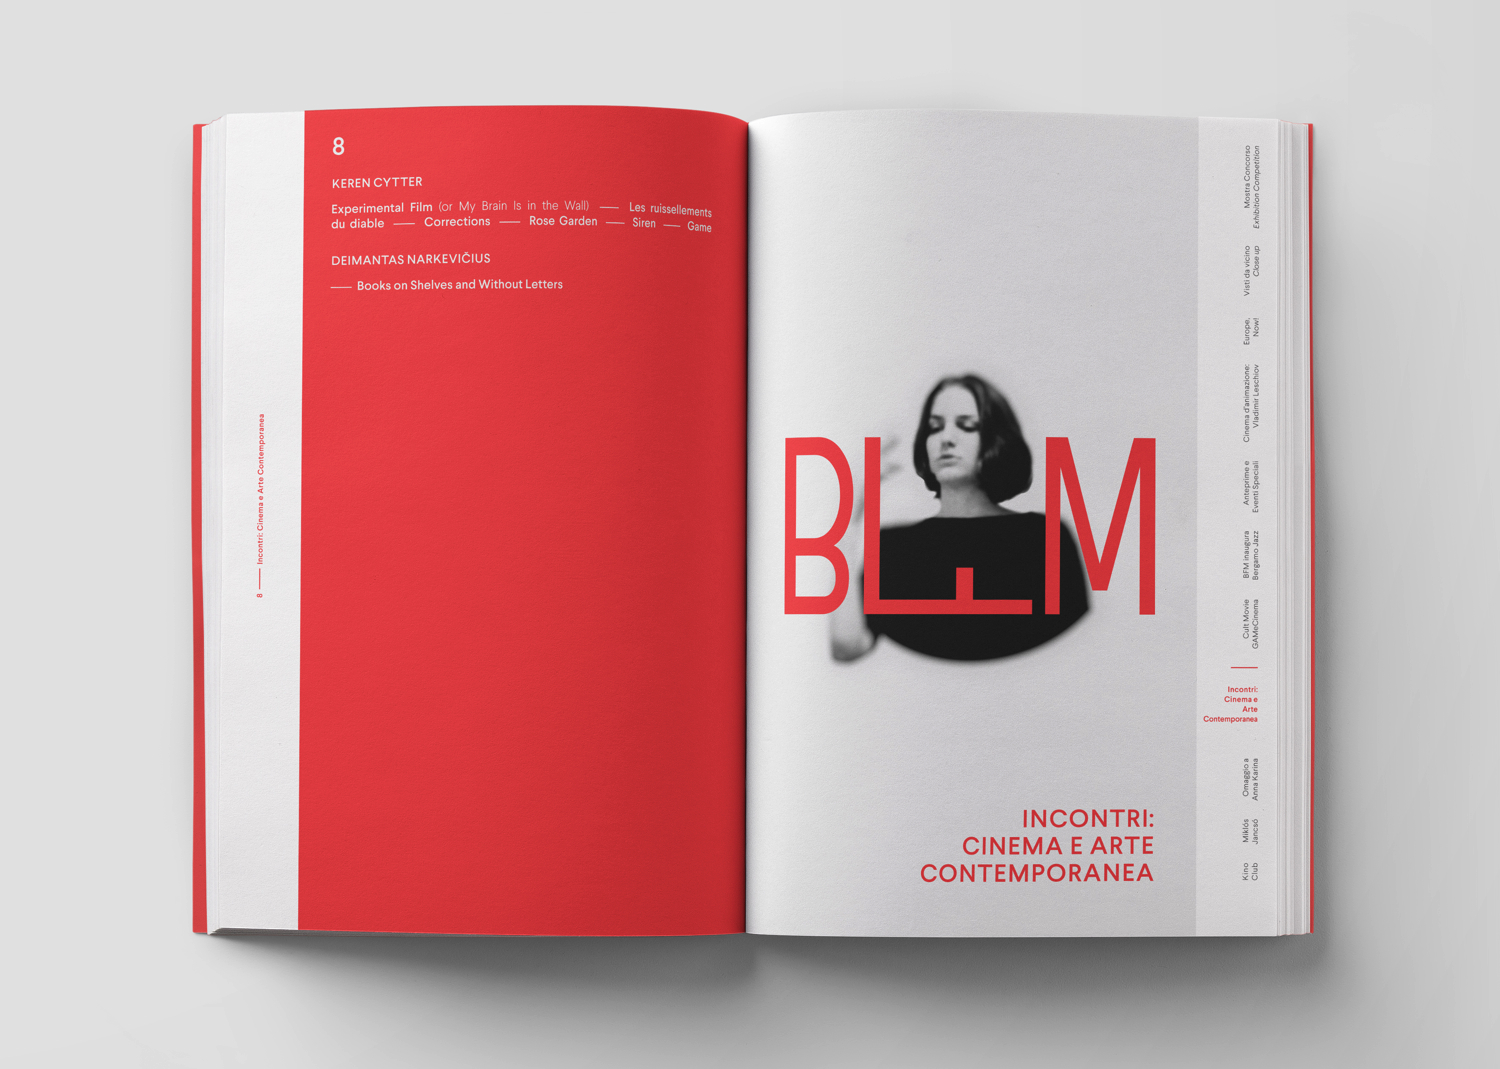 bfm_catalogue_08